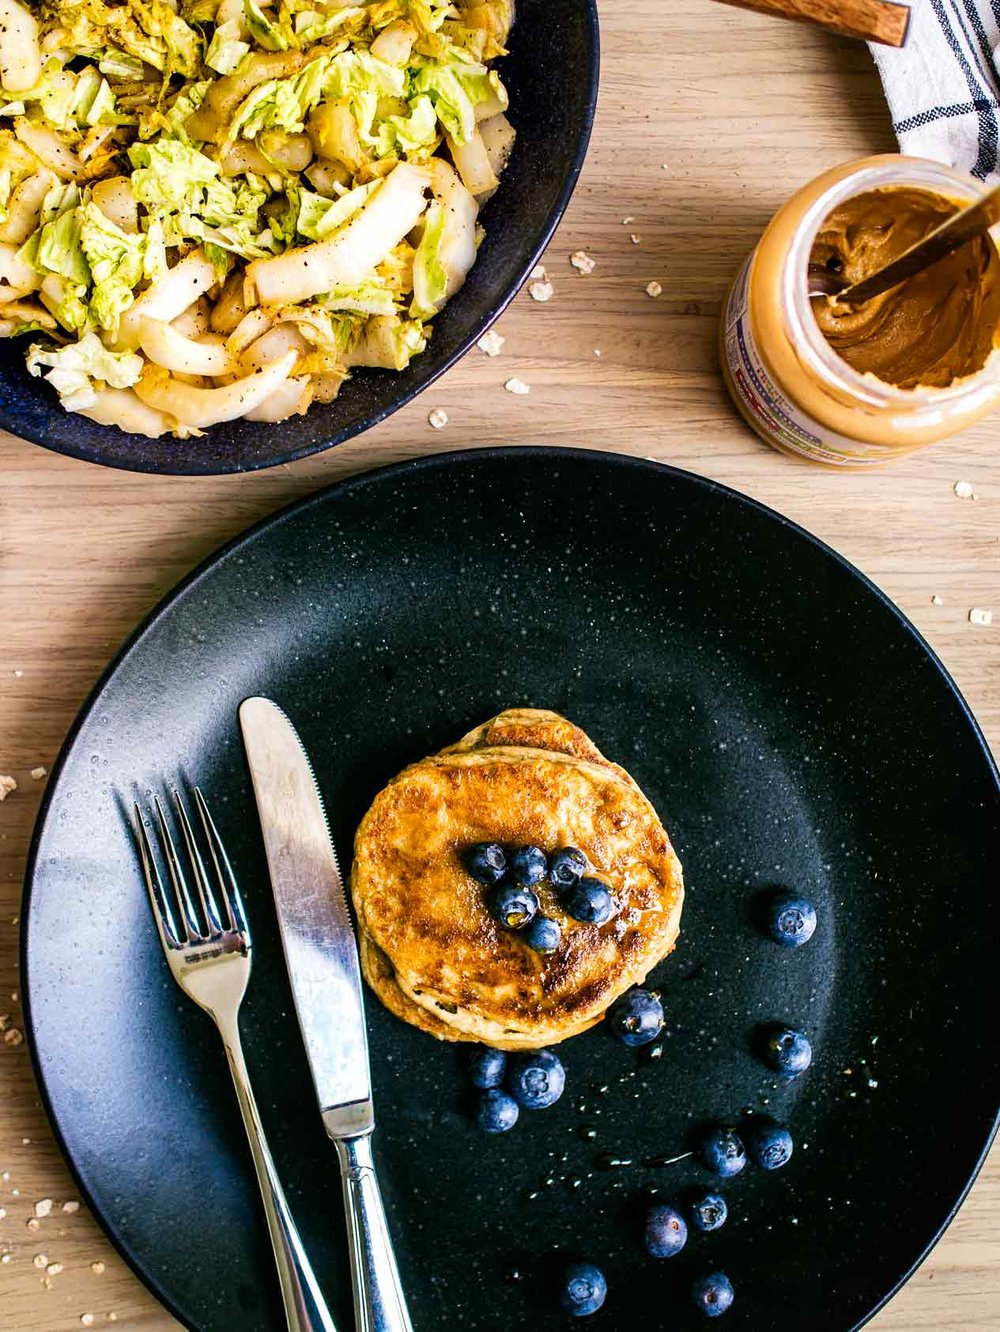 Peanut butter oat banana pancakes + peanut butter cabbage | 4 peanut butter recipes, 4 ingredients each! | www.discoverdelicious.org | vegan food blog